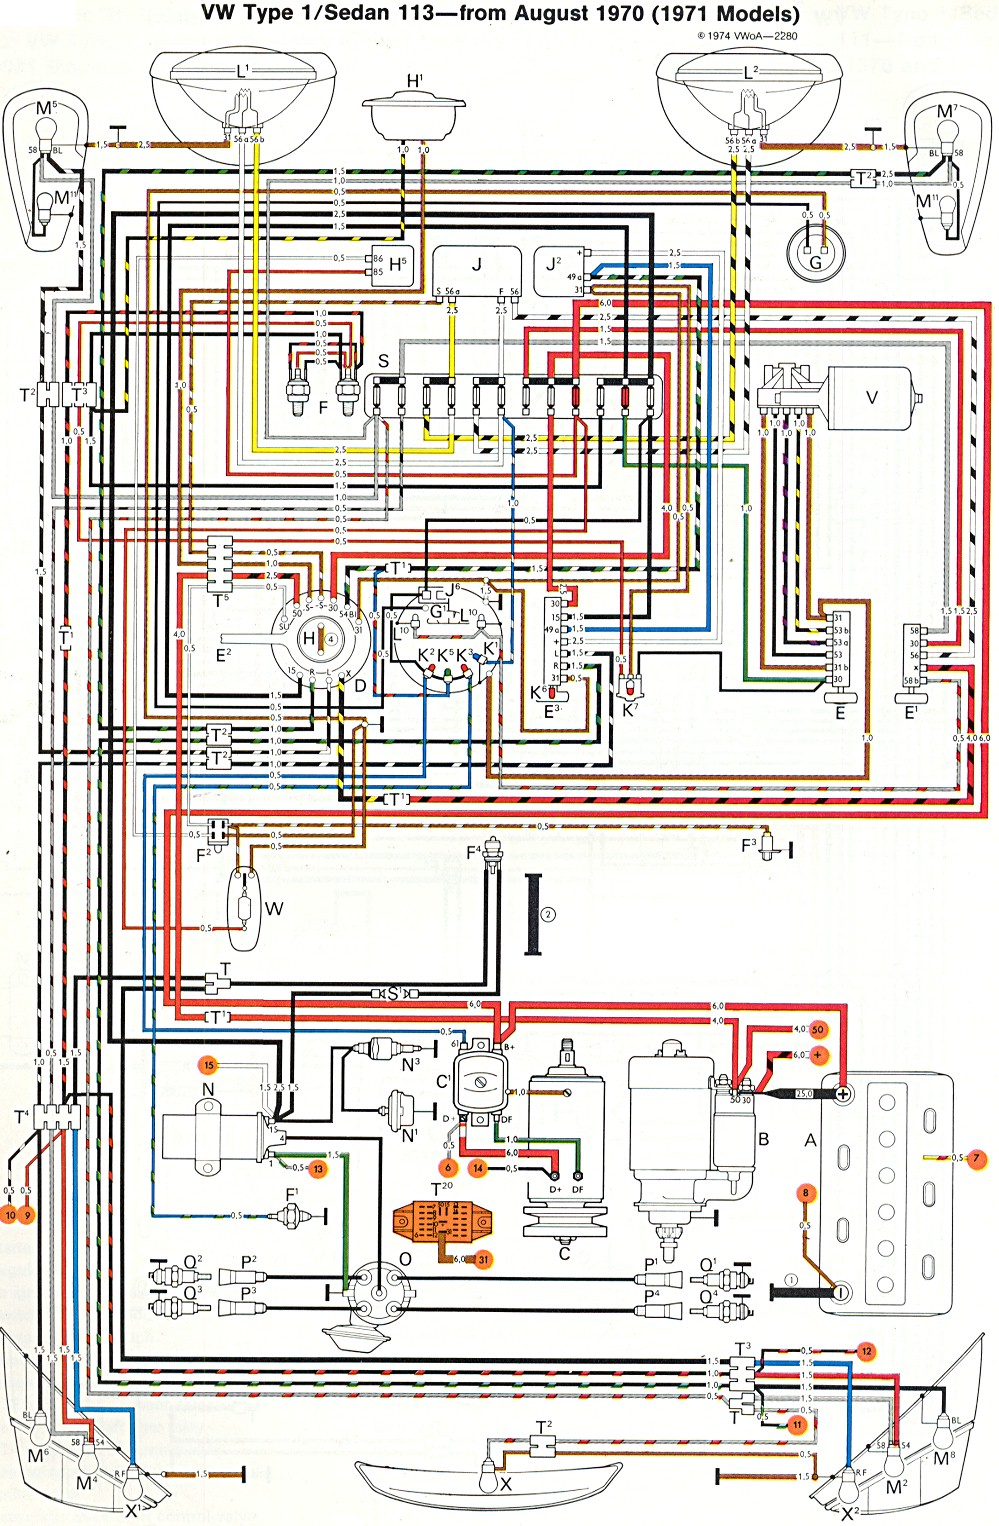 bug_super_71 1971 super beetle wiring diagram thegoldenbug com 1970 vw bug wiring diagram at readyjetset.co